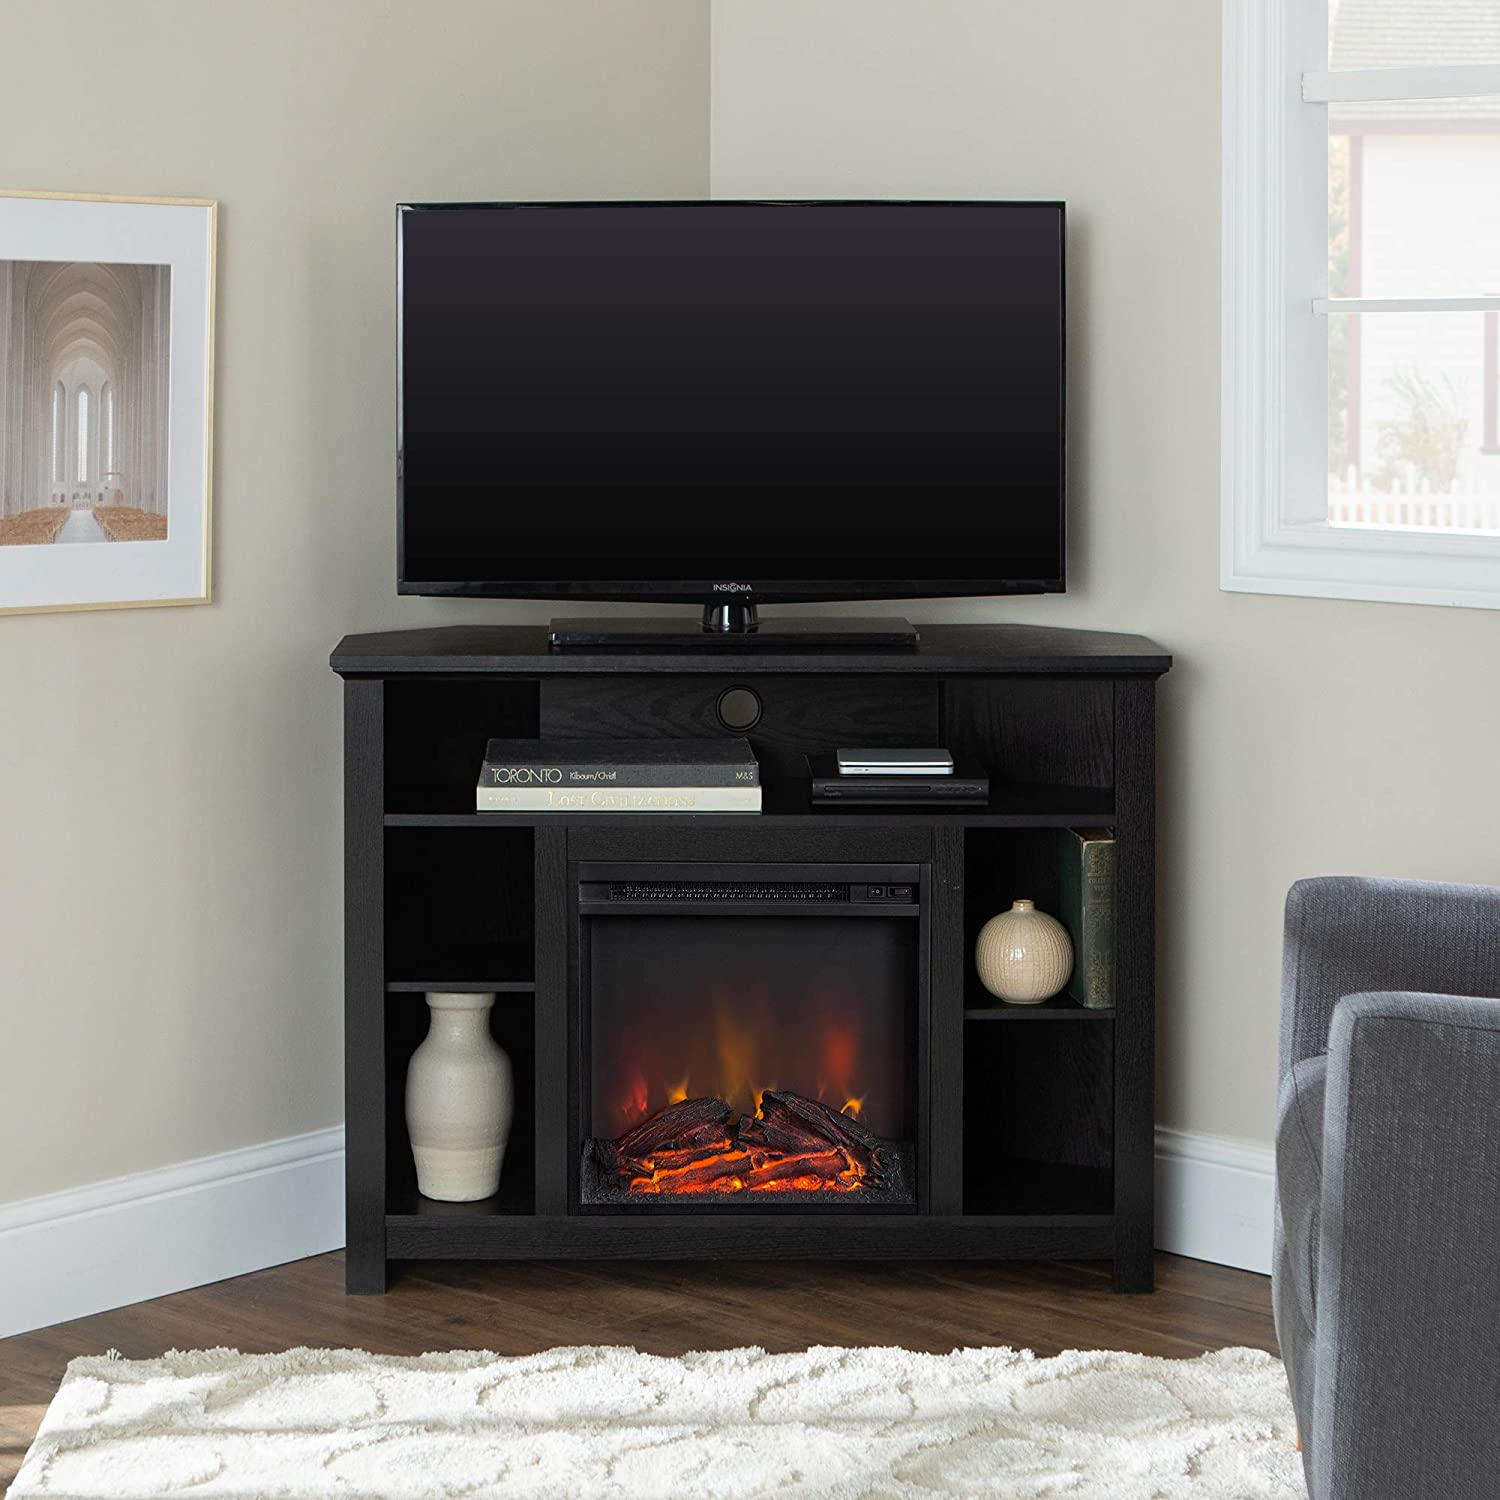 WE Furniture 44-inch Wood Corner Fireplace TV Stand - Black